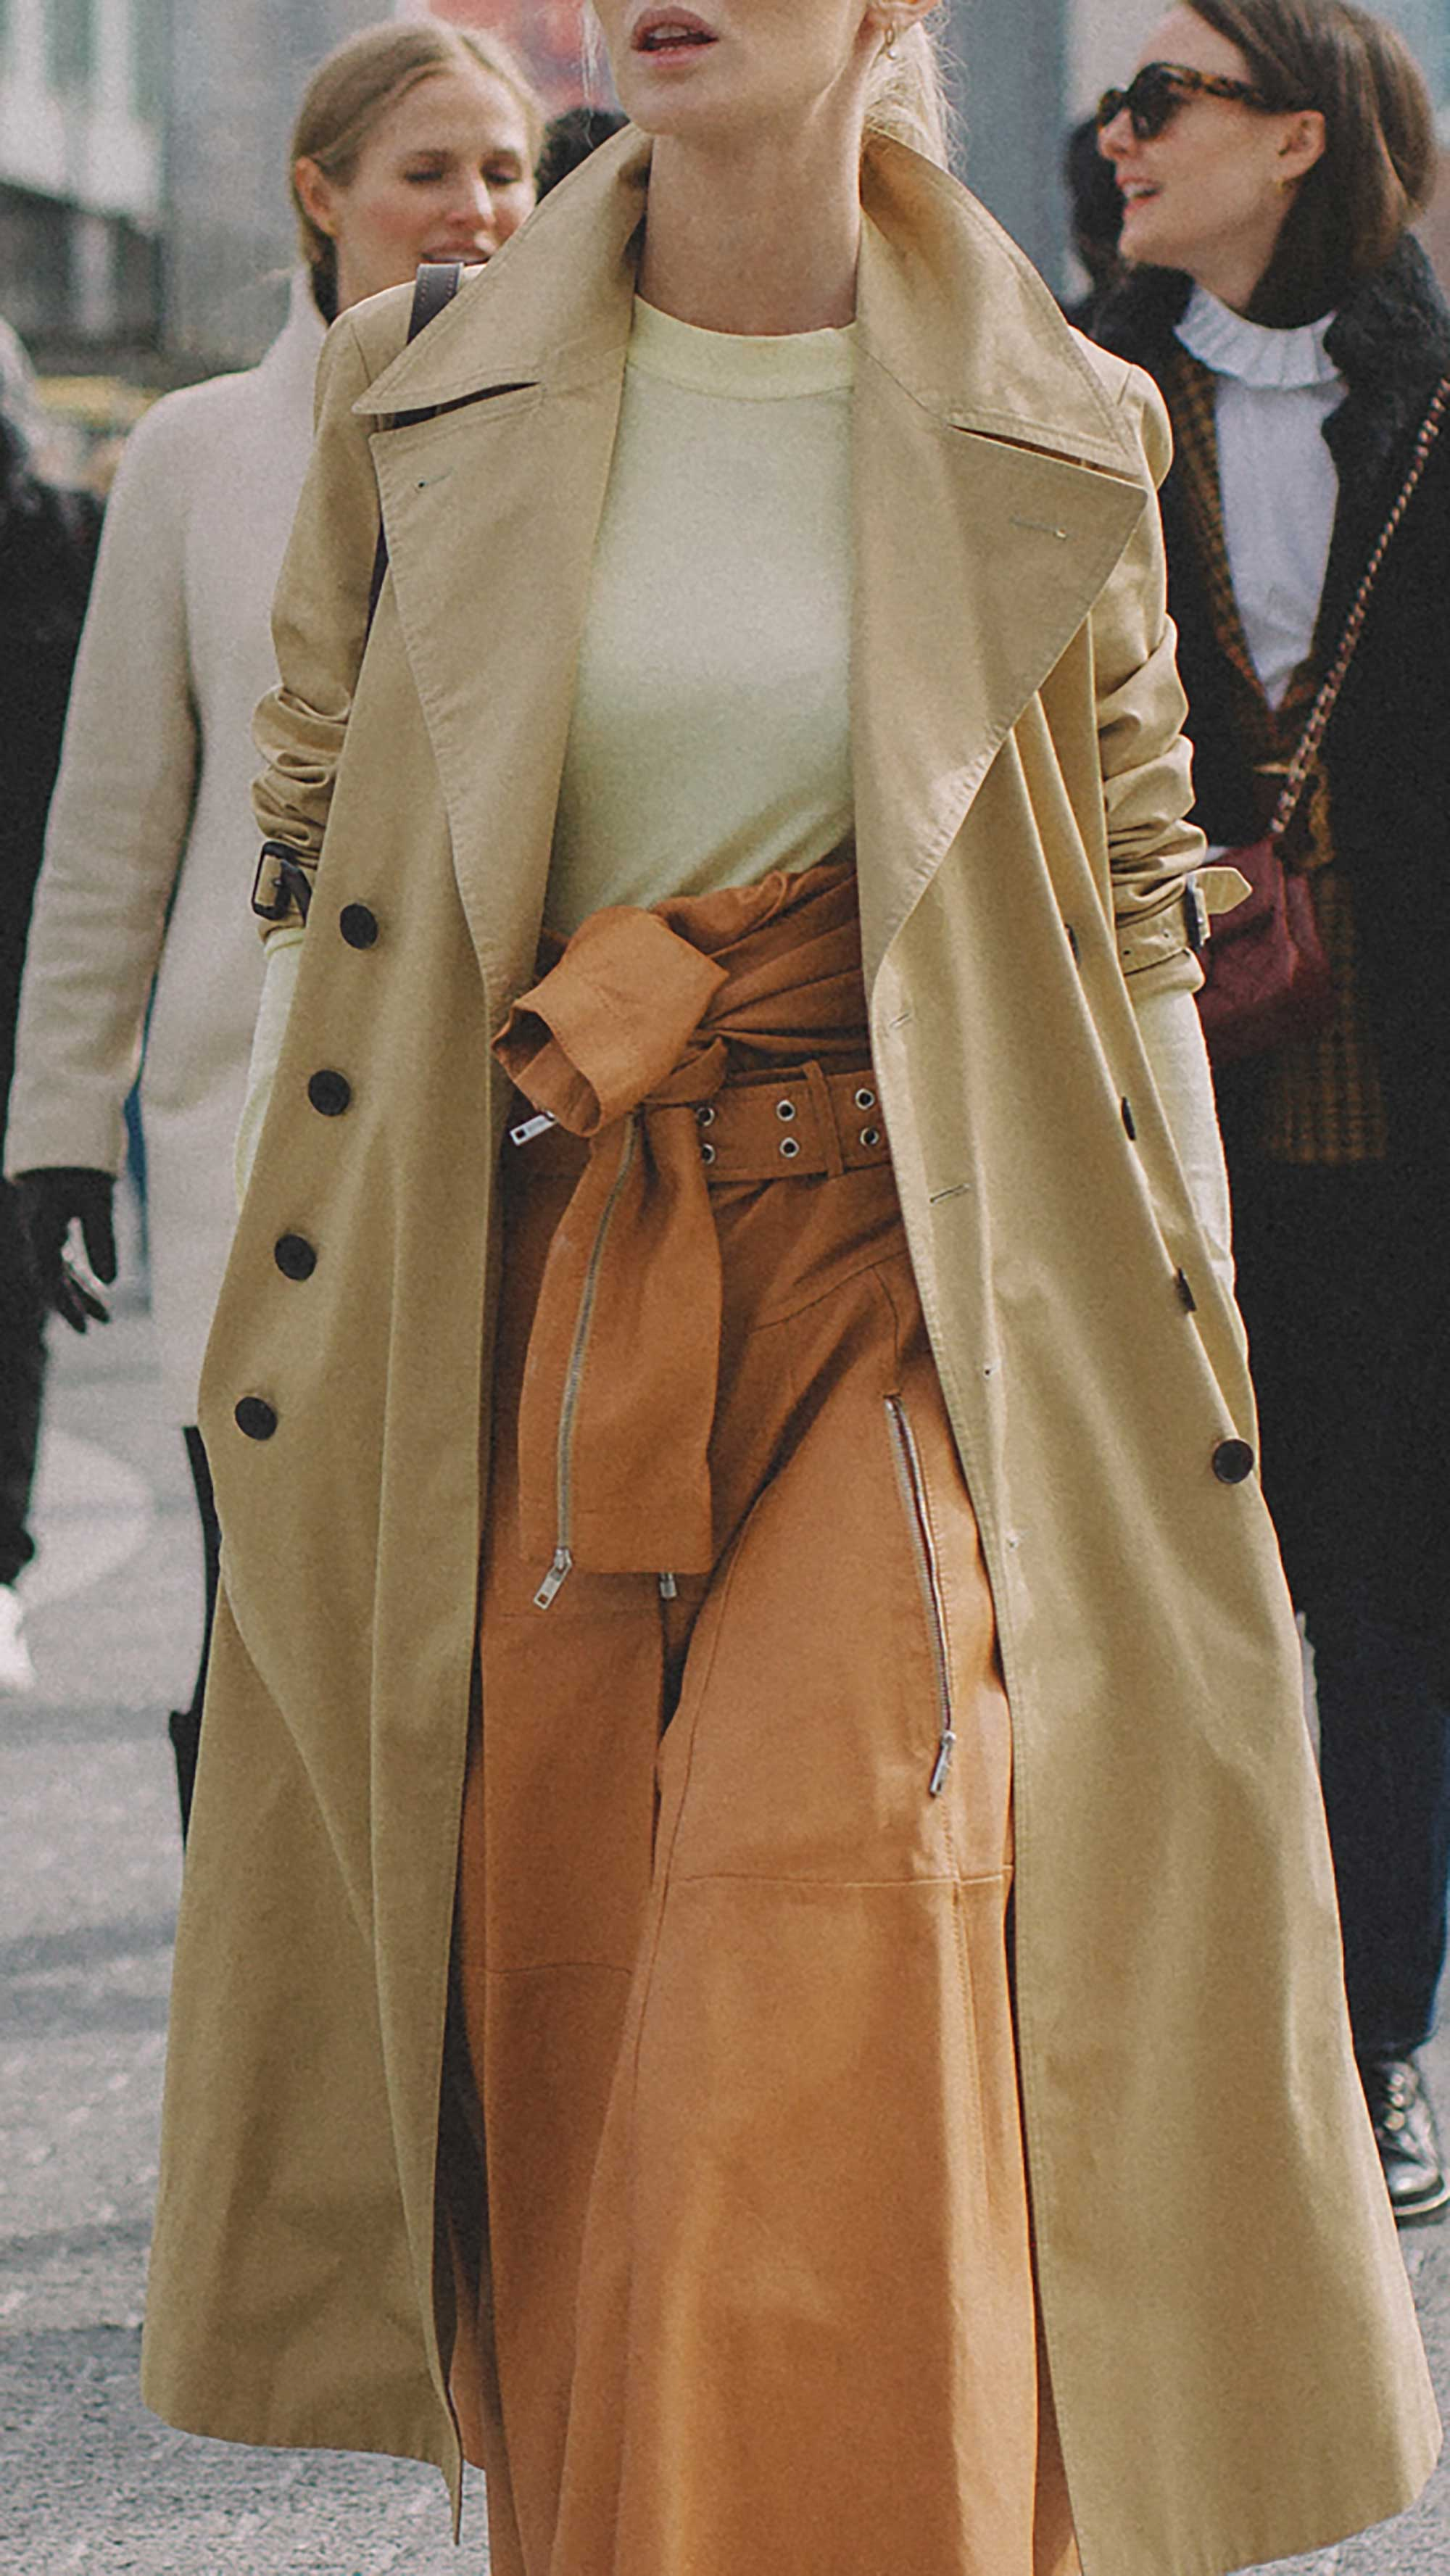 Best outfits of New York Fashion Week street style day four NYFW FW19 - 38.jpg